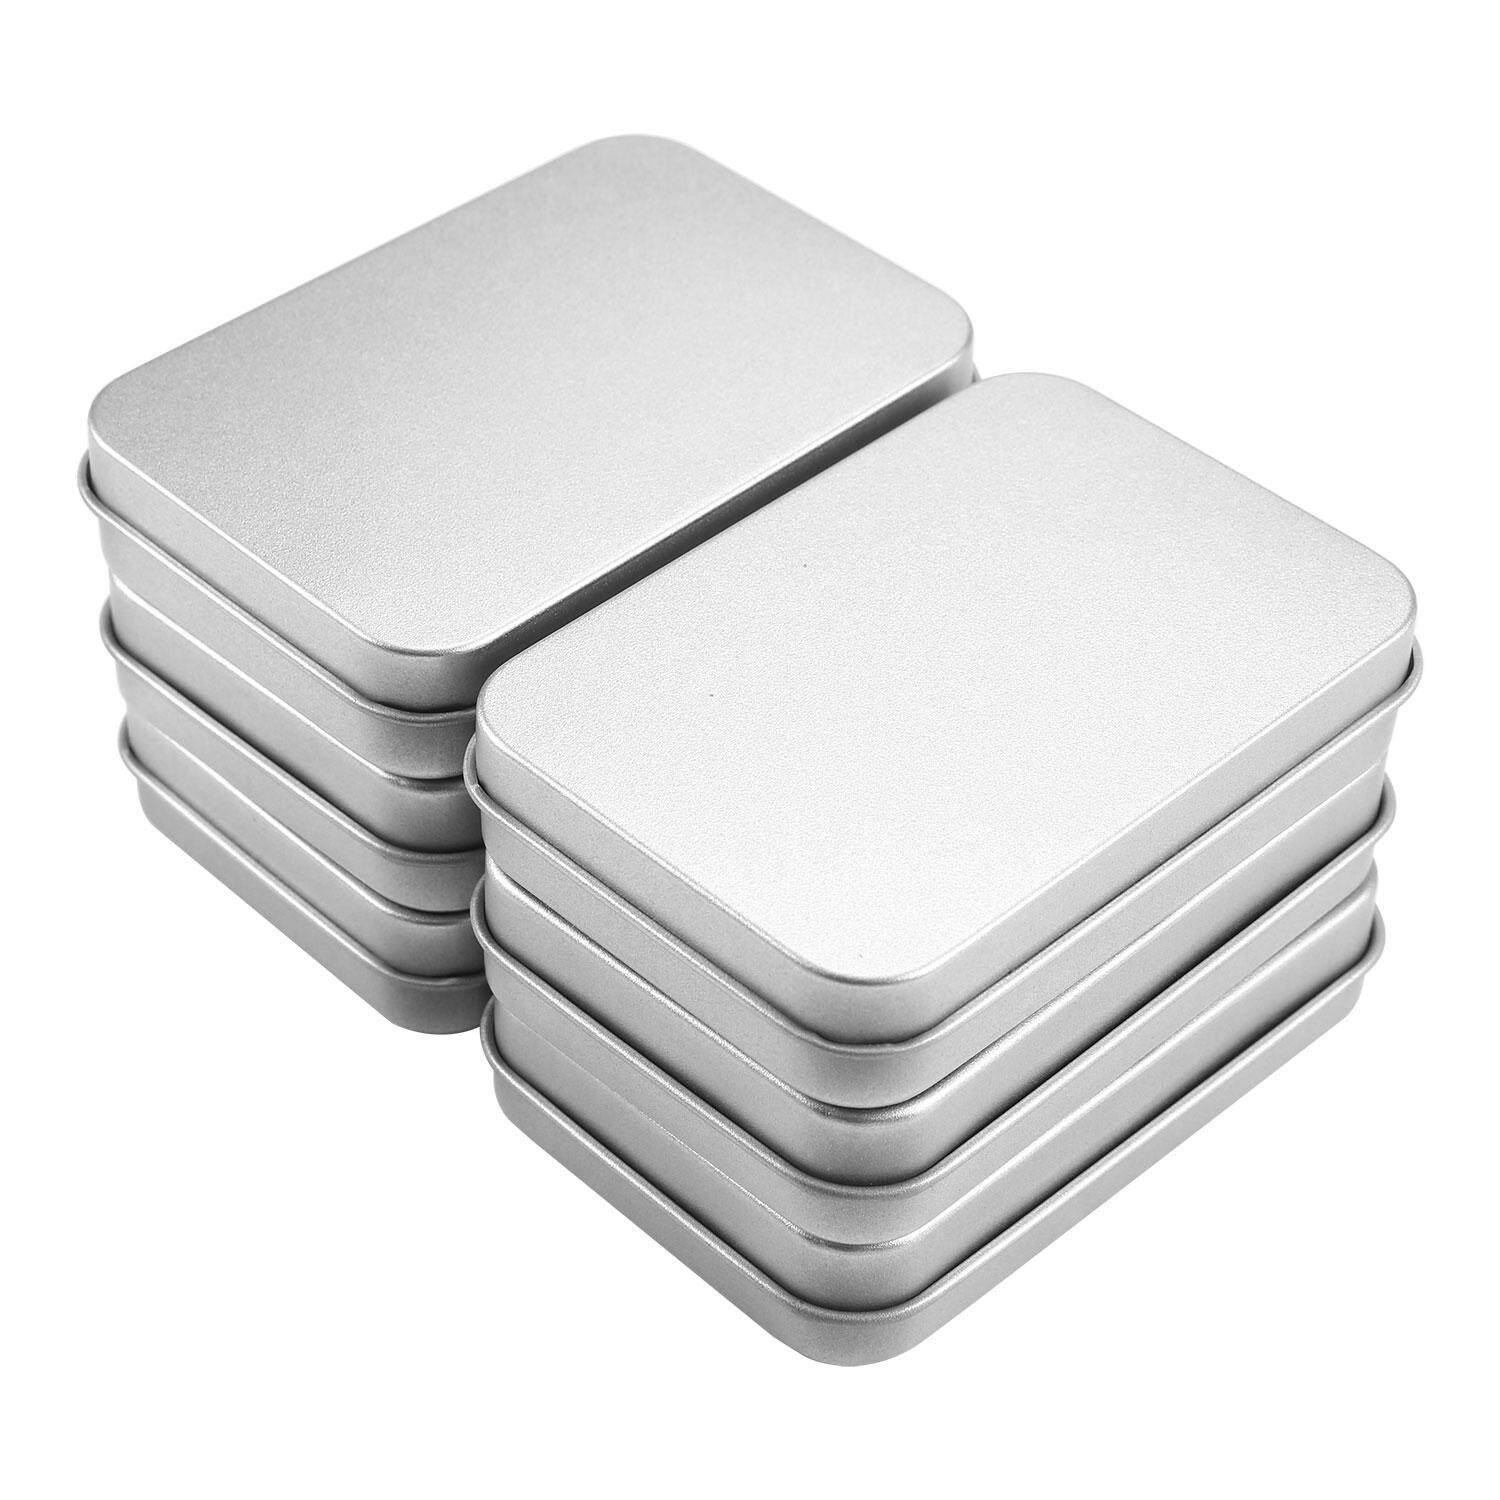 yiokmty 6 Pack 3.75 By 2.45 By 0.8 Inch Silver Metal Rectangular Empty Hinged Tins Box Containers Mini Portable Box Small Storage Kit, Home Organizer - intl